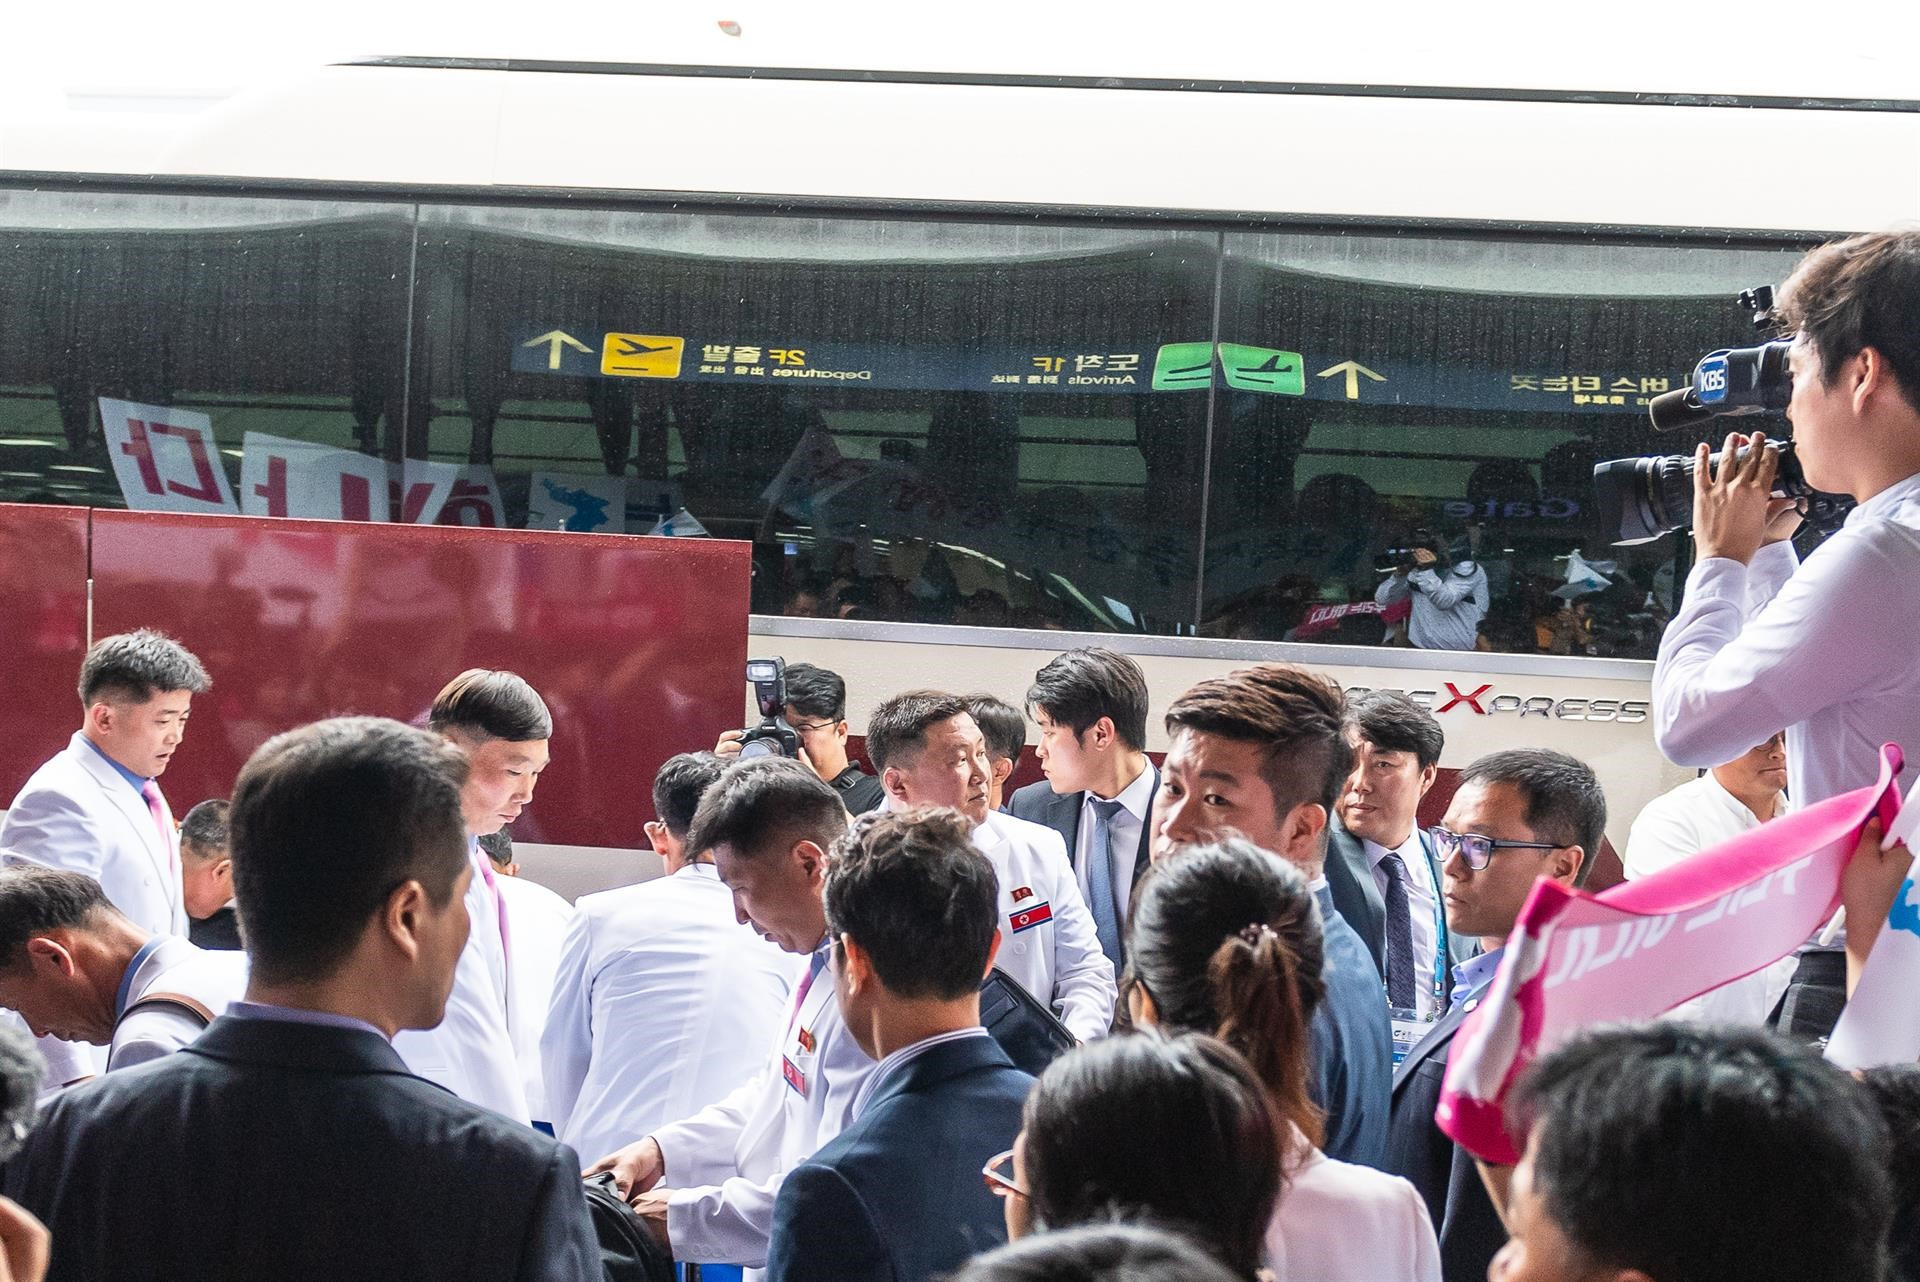 North Korea arrived in South Korea for the event today ©ISSF